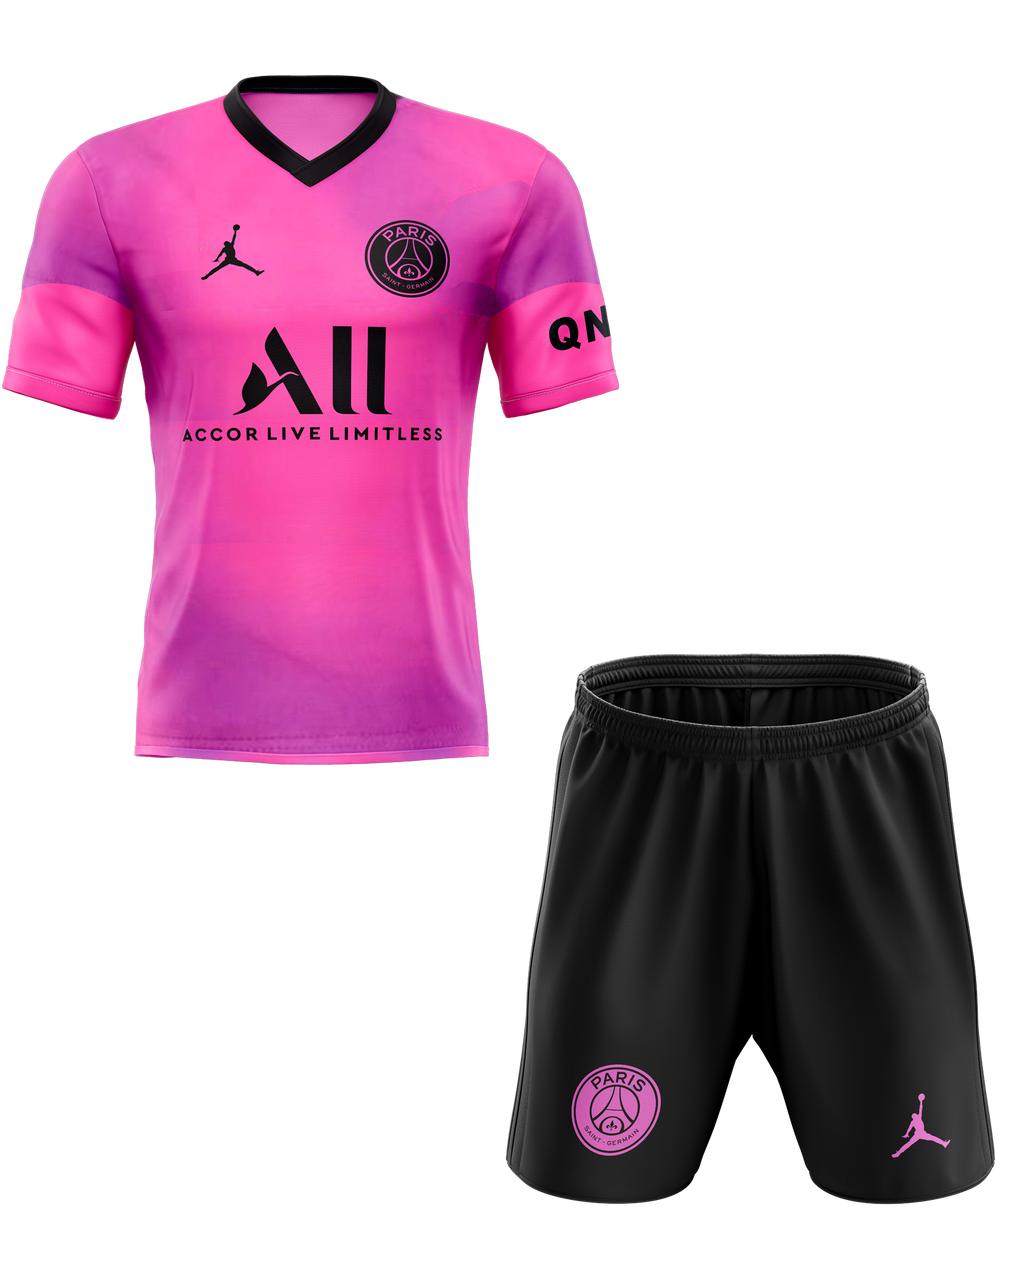 20 21 Psg Training Neon Pink Kids Kit With Free Name And Number Coolkits4u